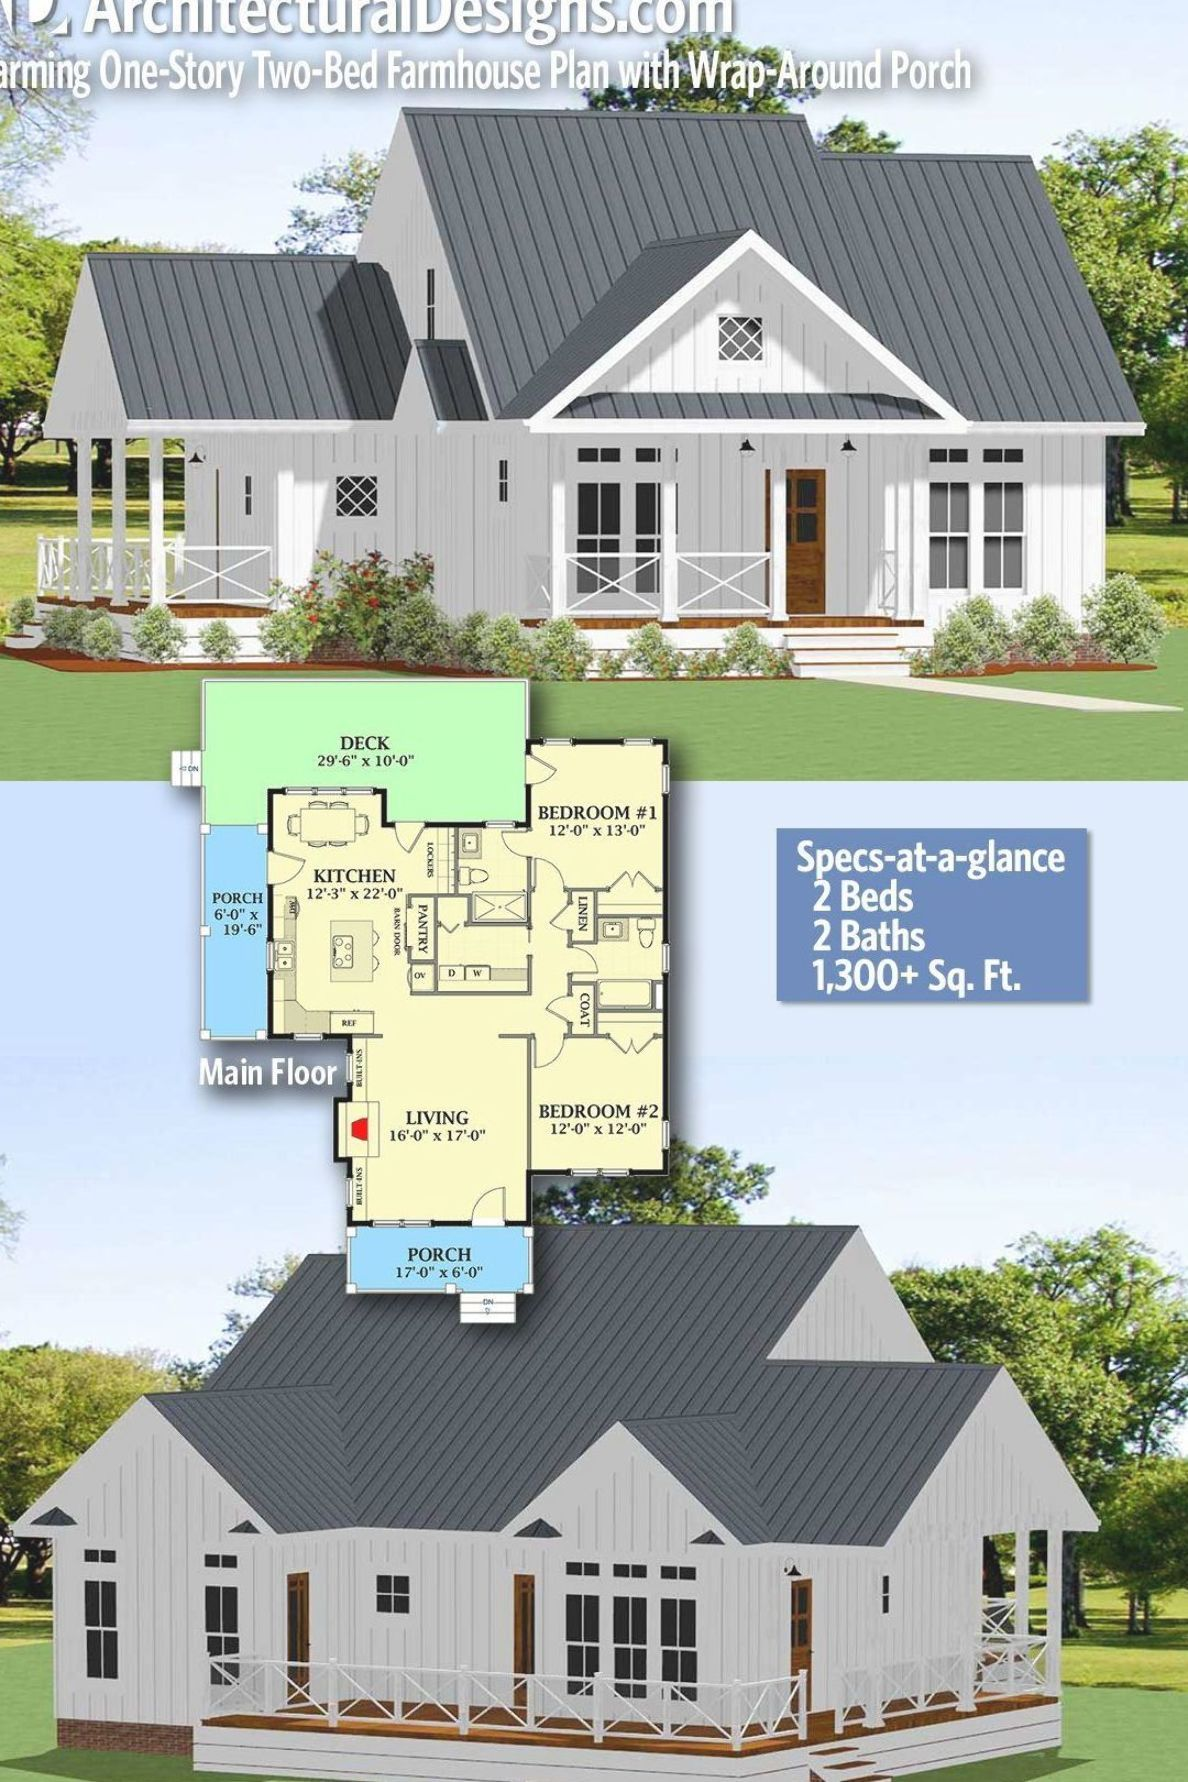 Architectural Designs Farmhouse Plan 46367la Gives You 2 Bedrooms 2 Baths And 1 300 Sq Ft Read In 2020 Small Farmhouse Plans Farmhouse Plans Farmhouse Floor Plans